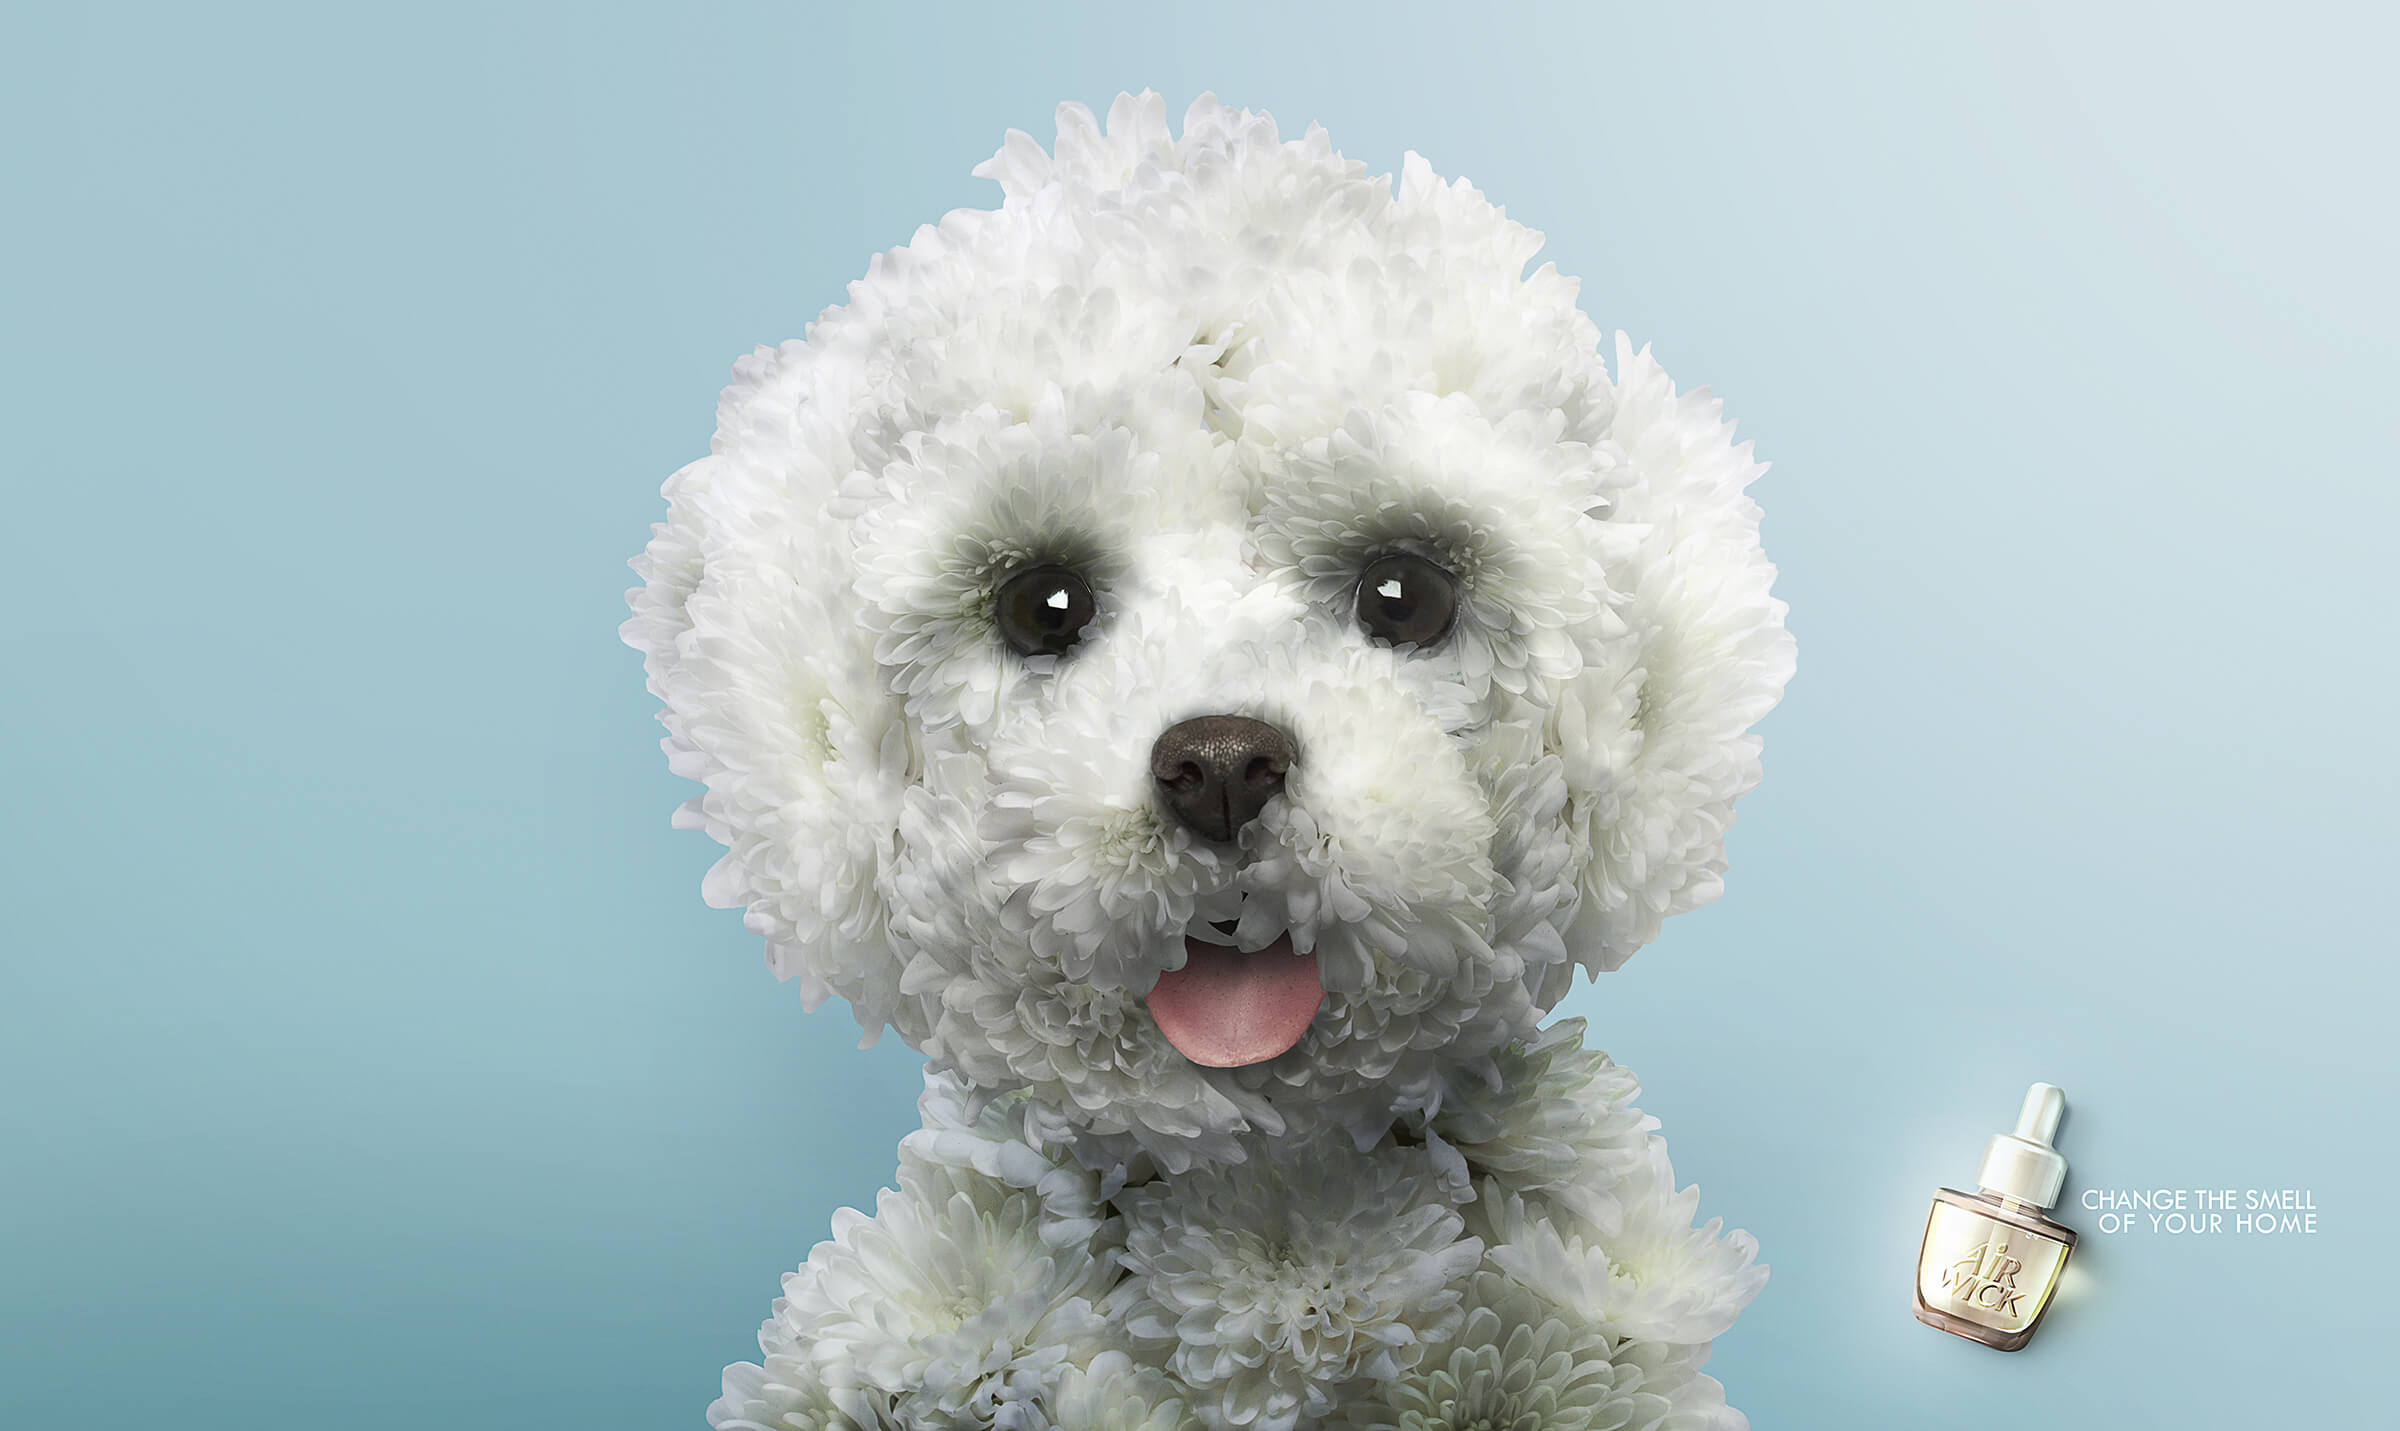 http://www.dreamstime.com/stock-image-close-up-maltese-puppy-panting-looking-camera-isolated-grey-background-image37142781